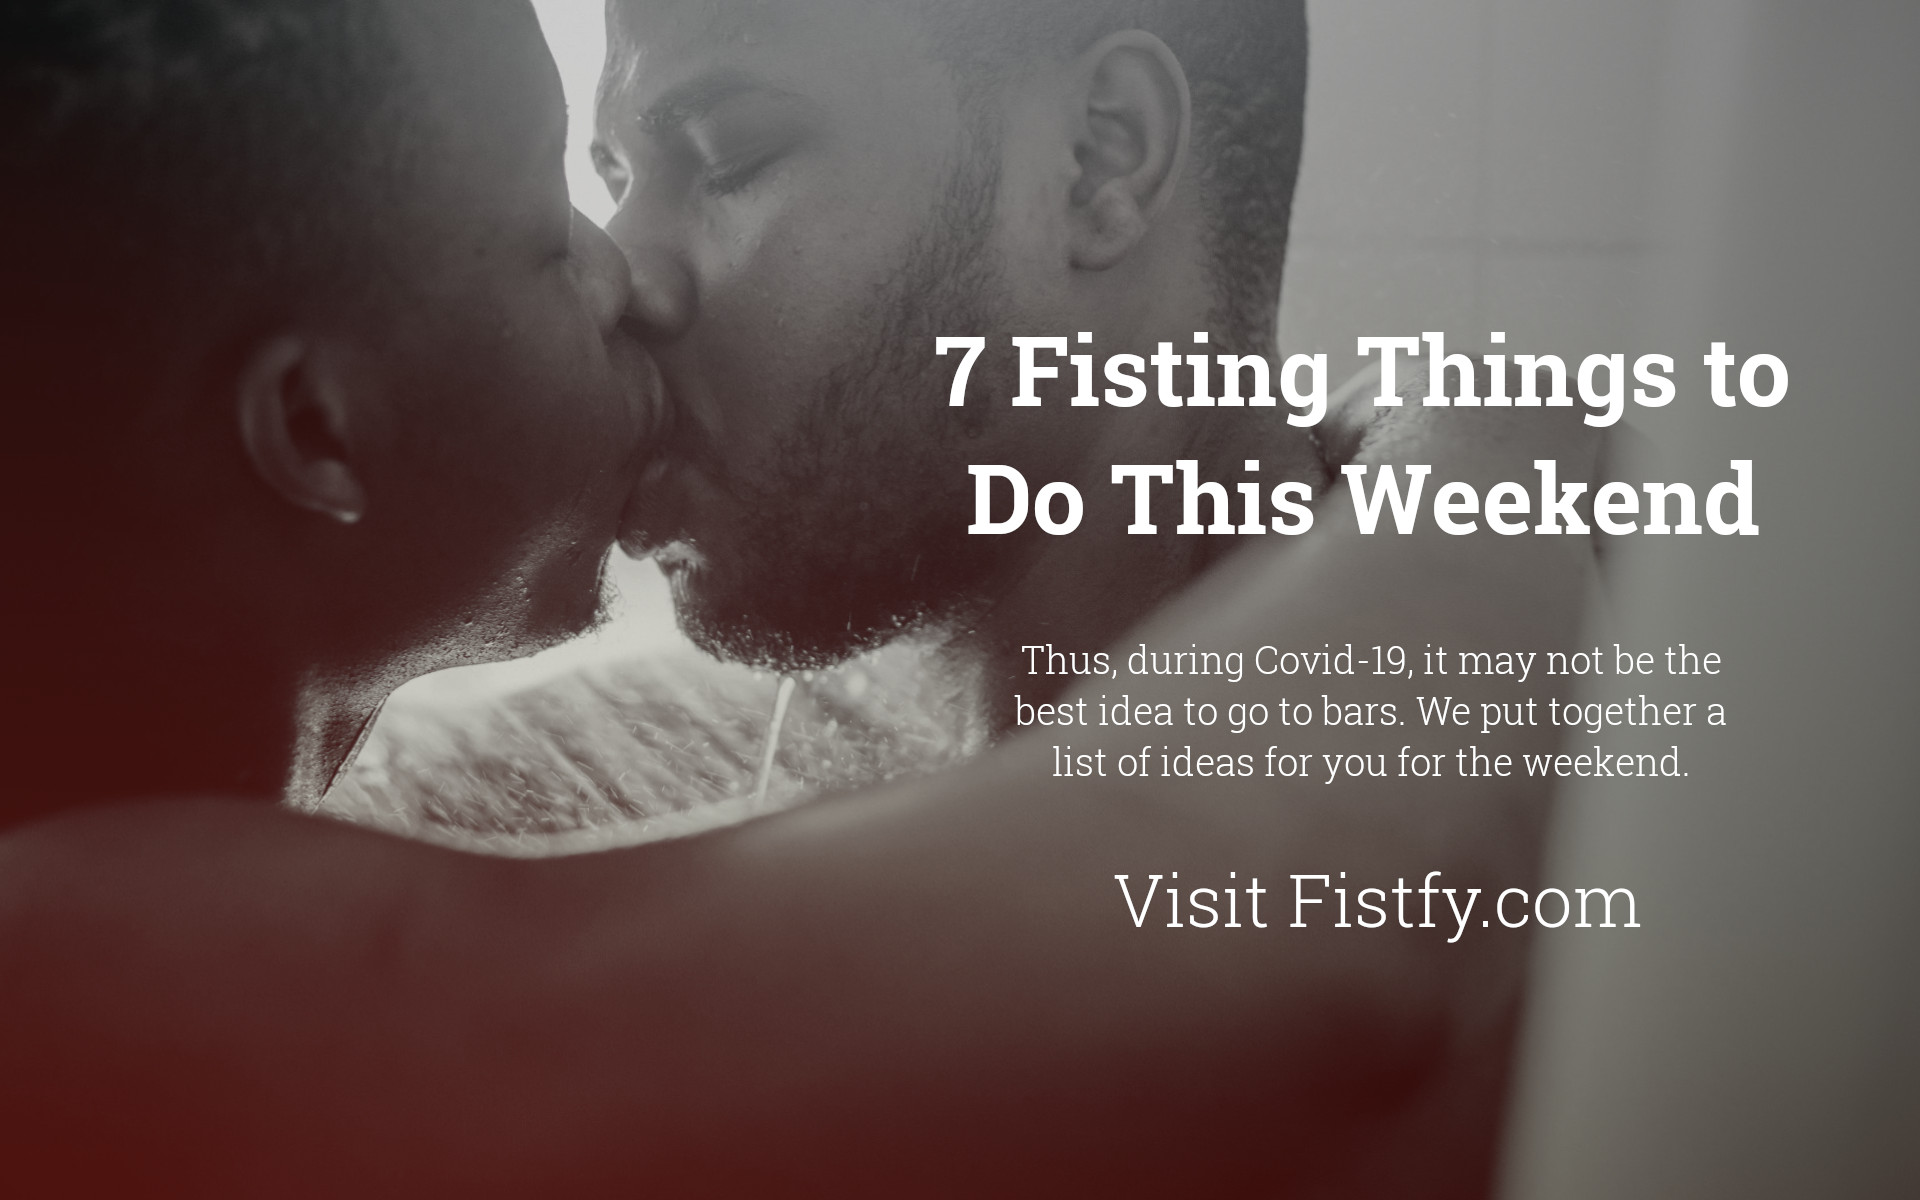 fisting-things to weekend